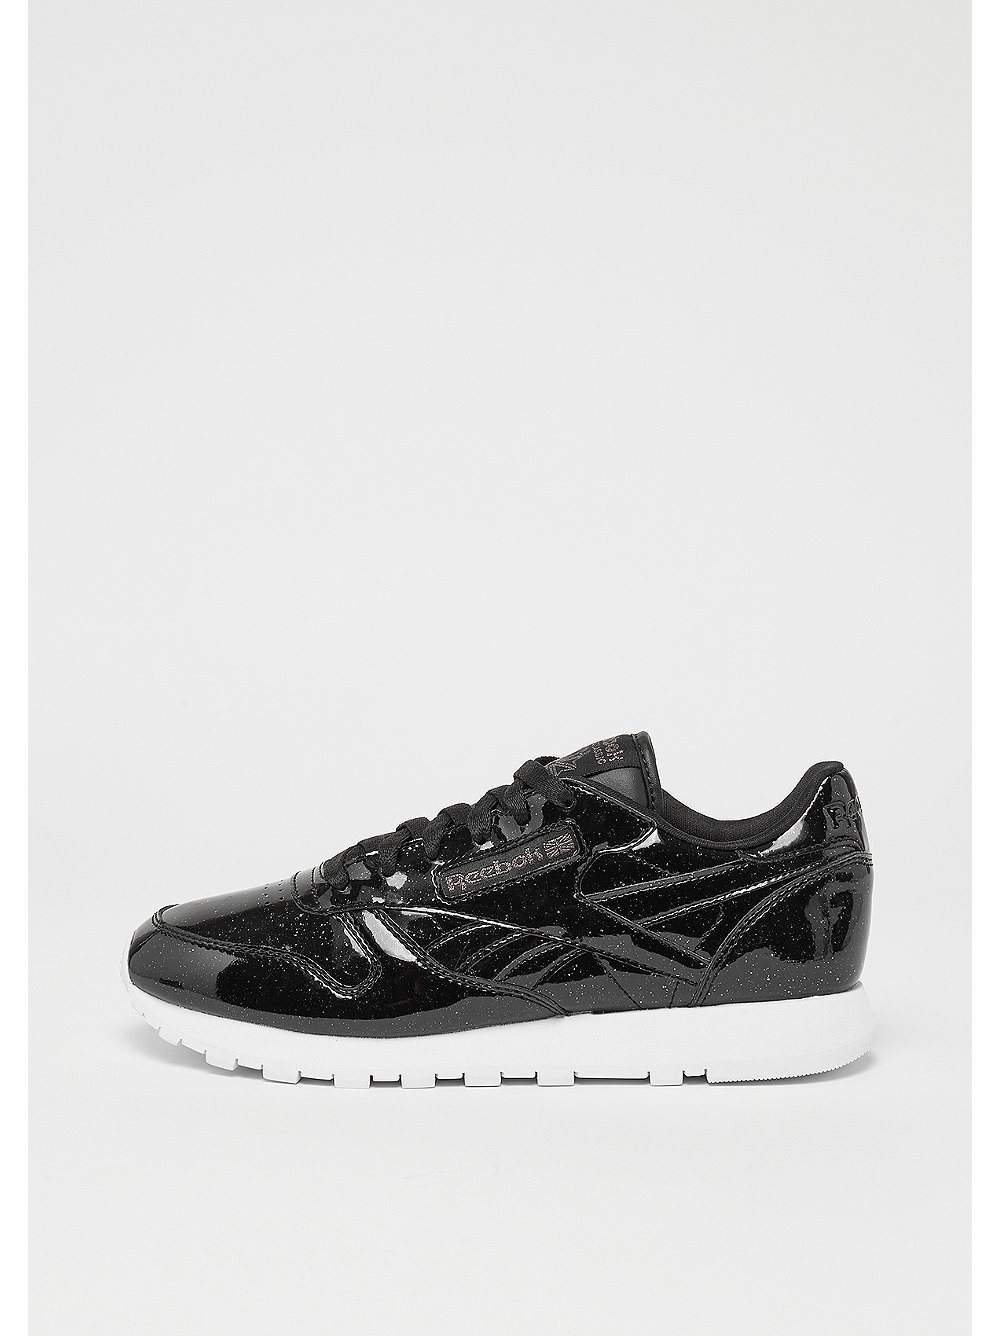 Reebok Classic Leather PP black